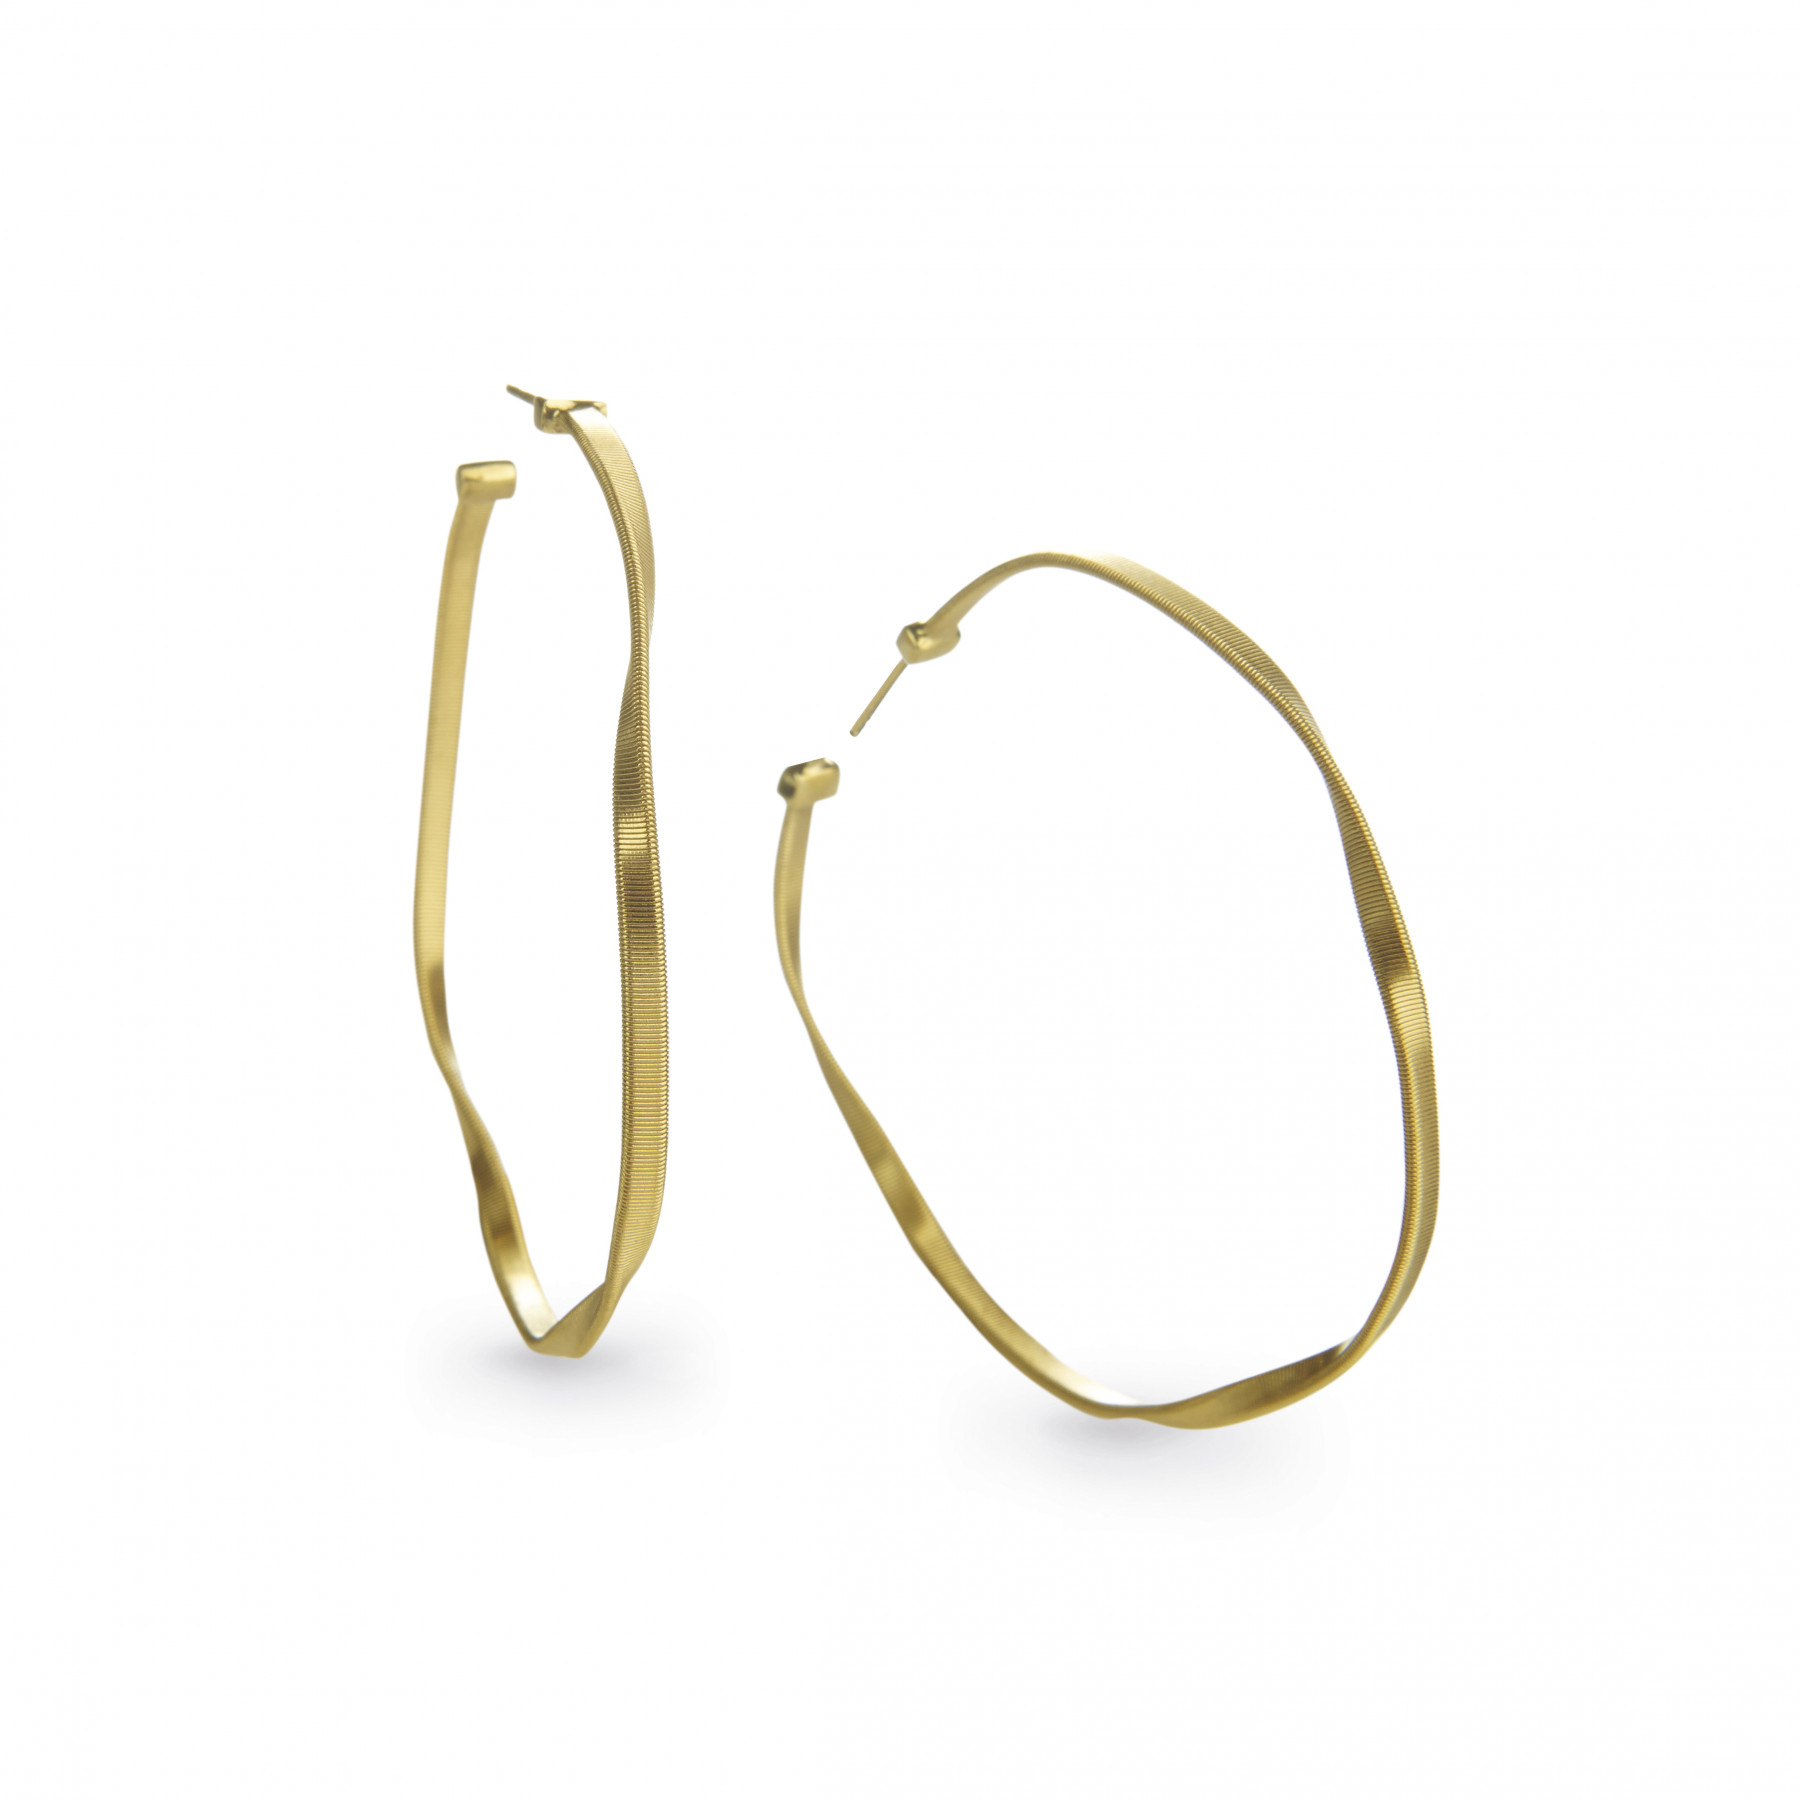 Marco Bicego Marrakech Round Hoop Earrings Hand Finished in 18kt Yellow Gold 2""